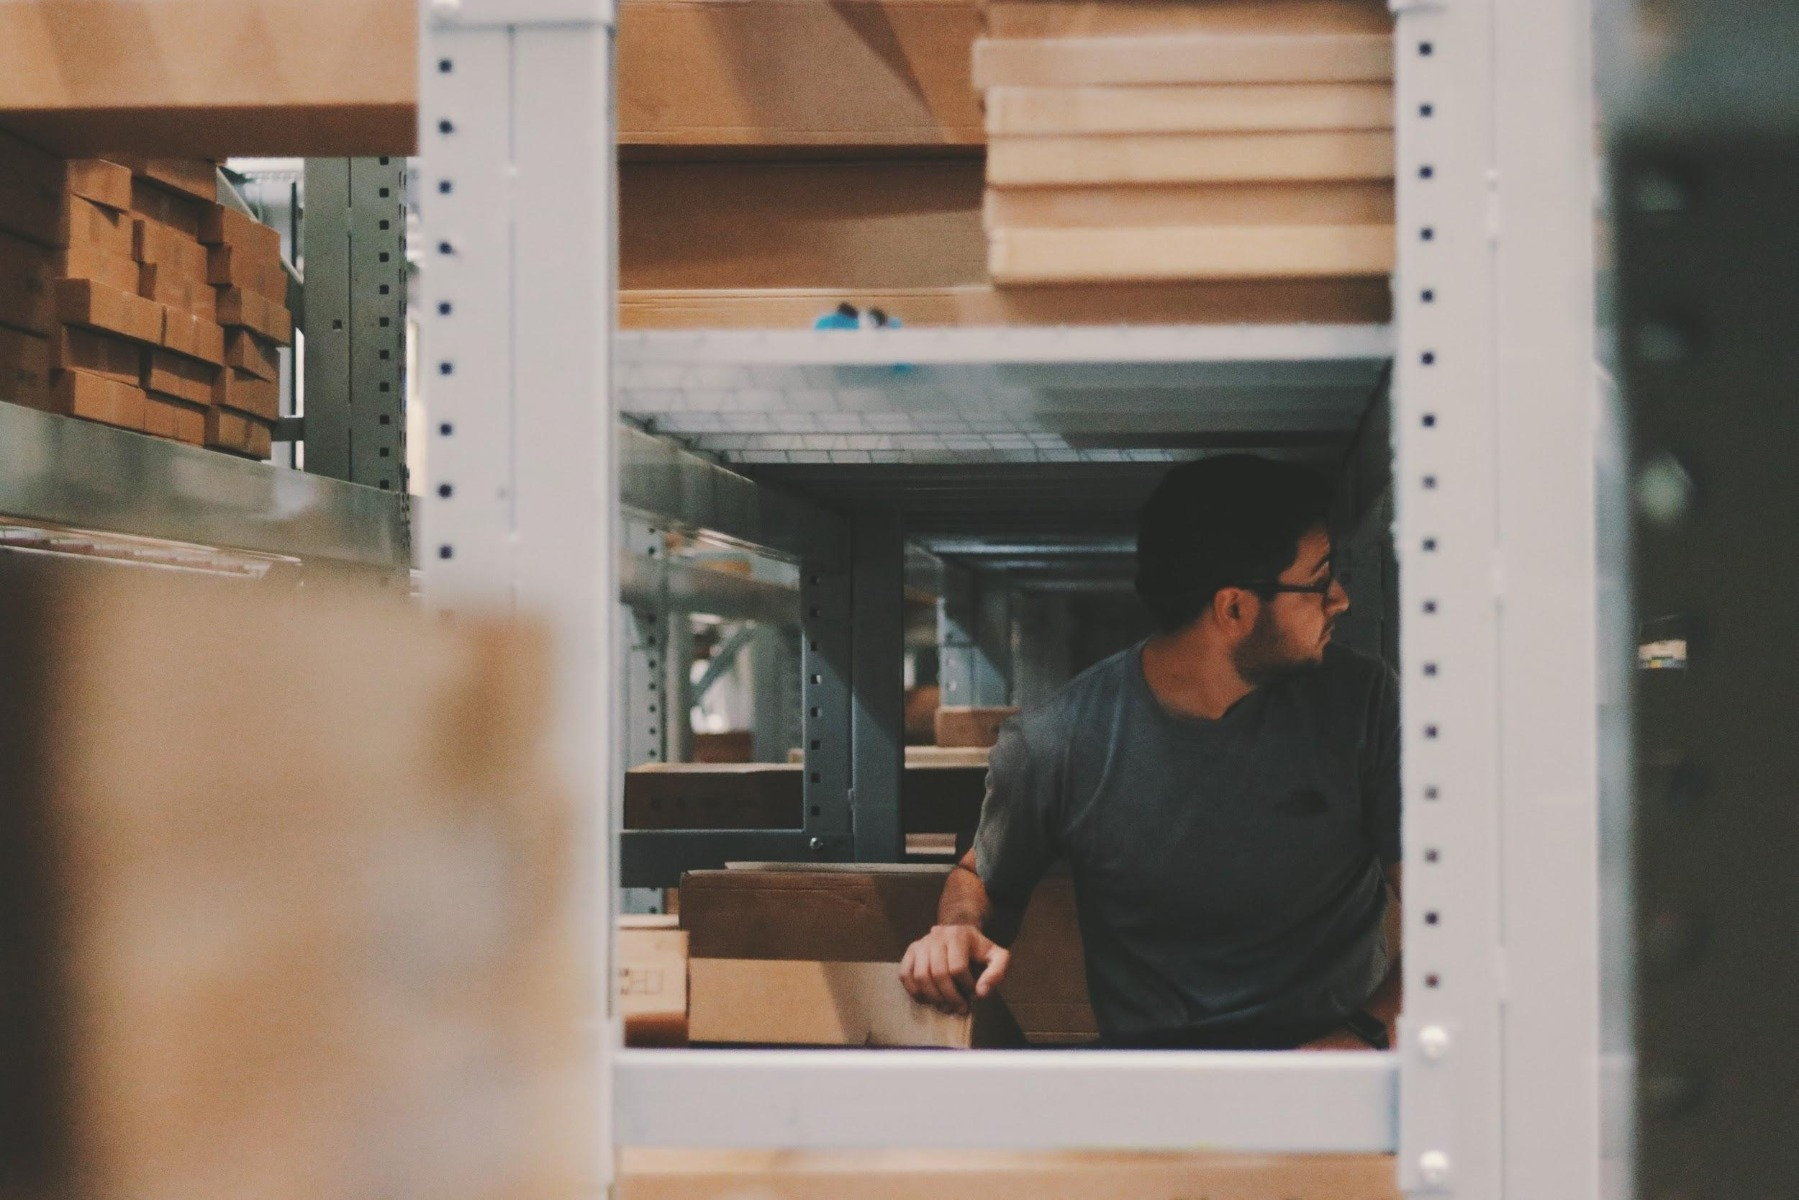 Man under shelf with cardboard boxes